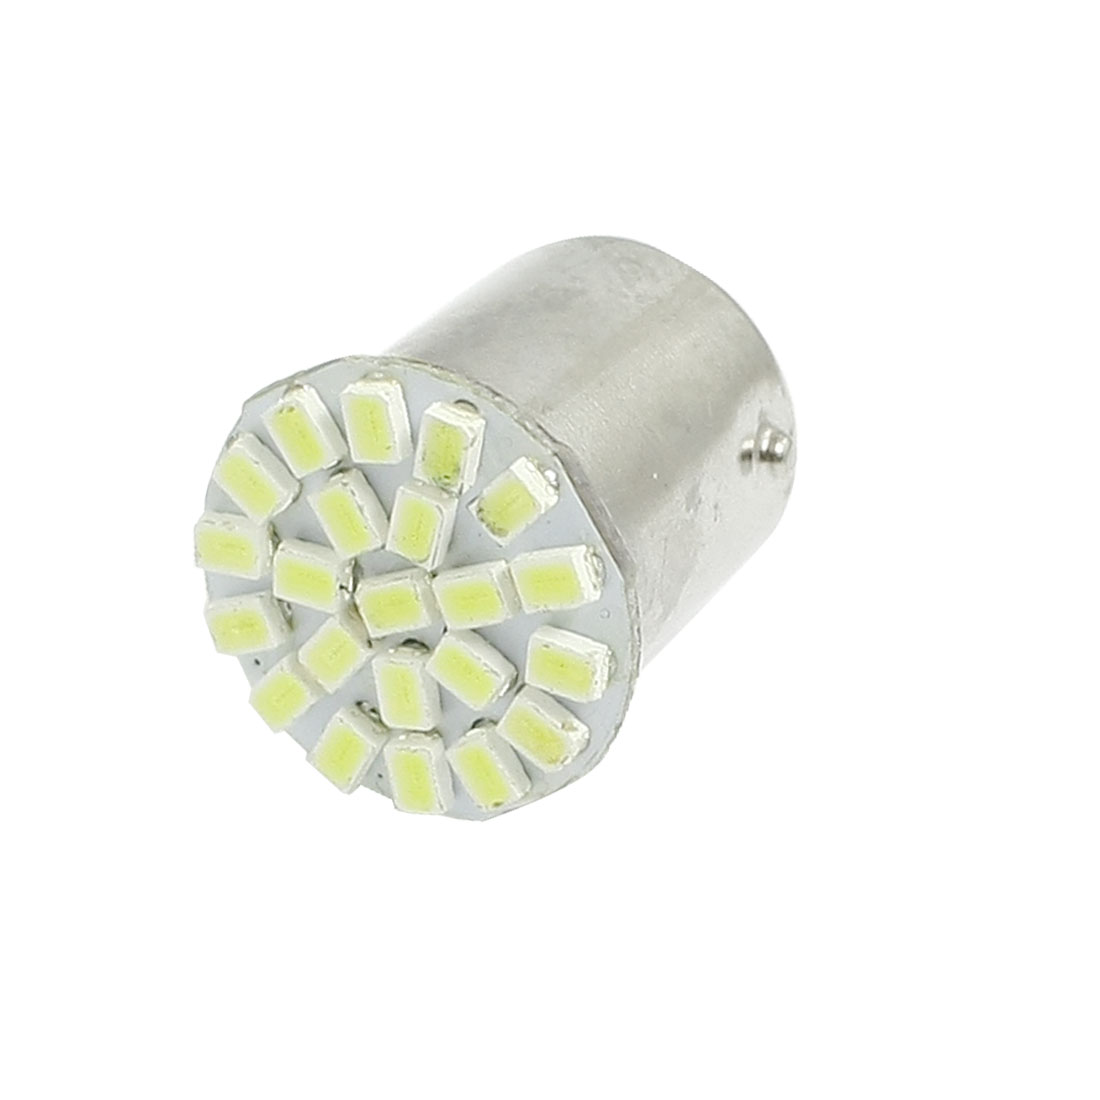 BA15S 1156 P21W White 22 1206 SMD LED Tail Brake Light Lamp Bulb